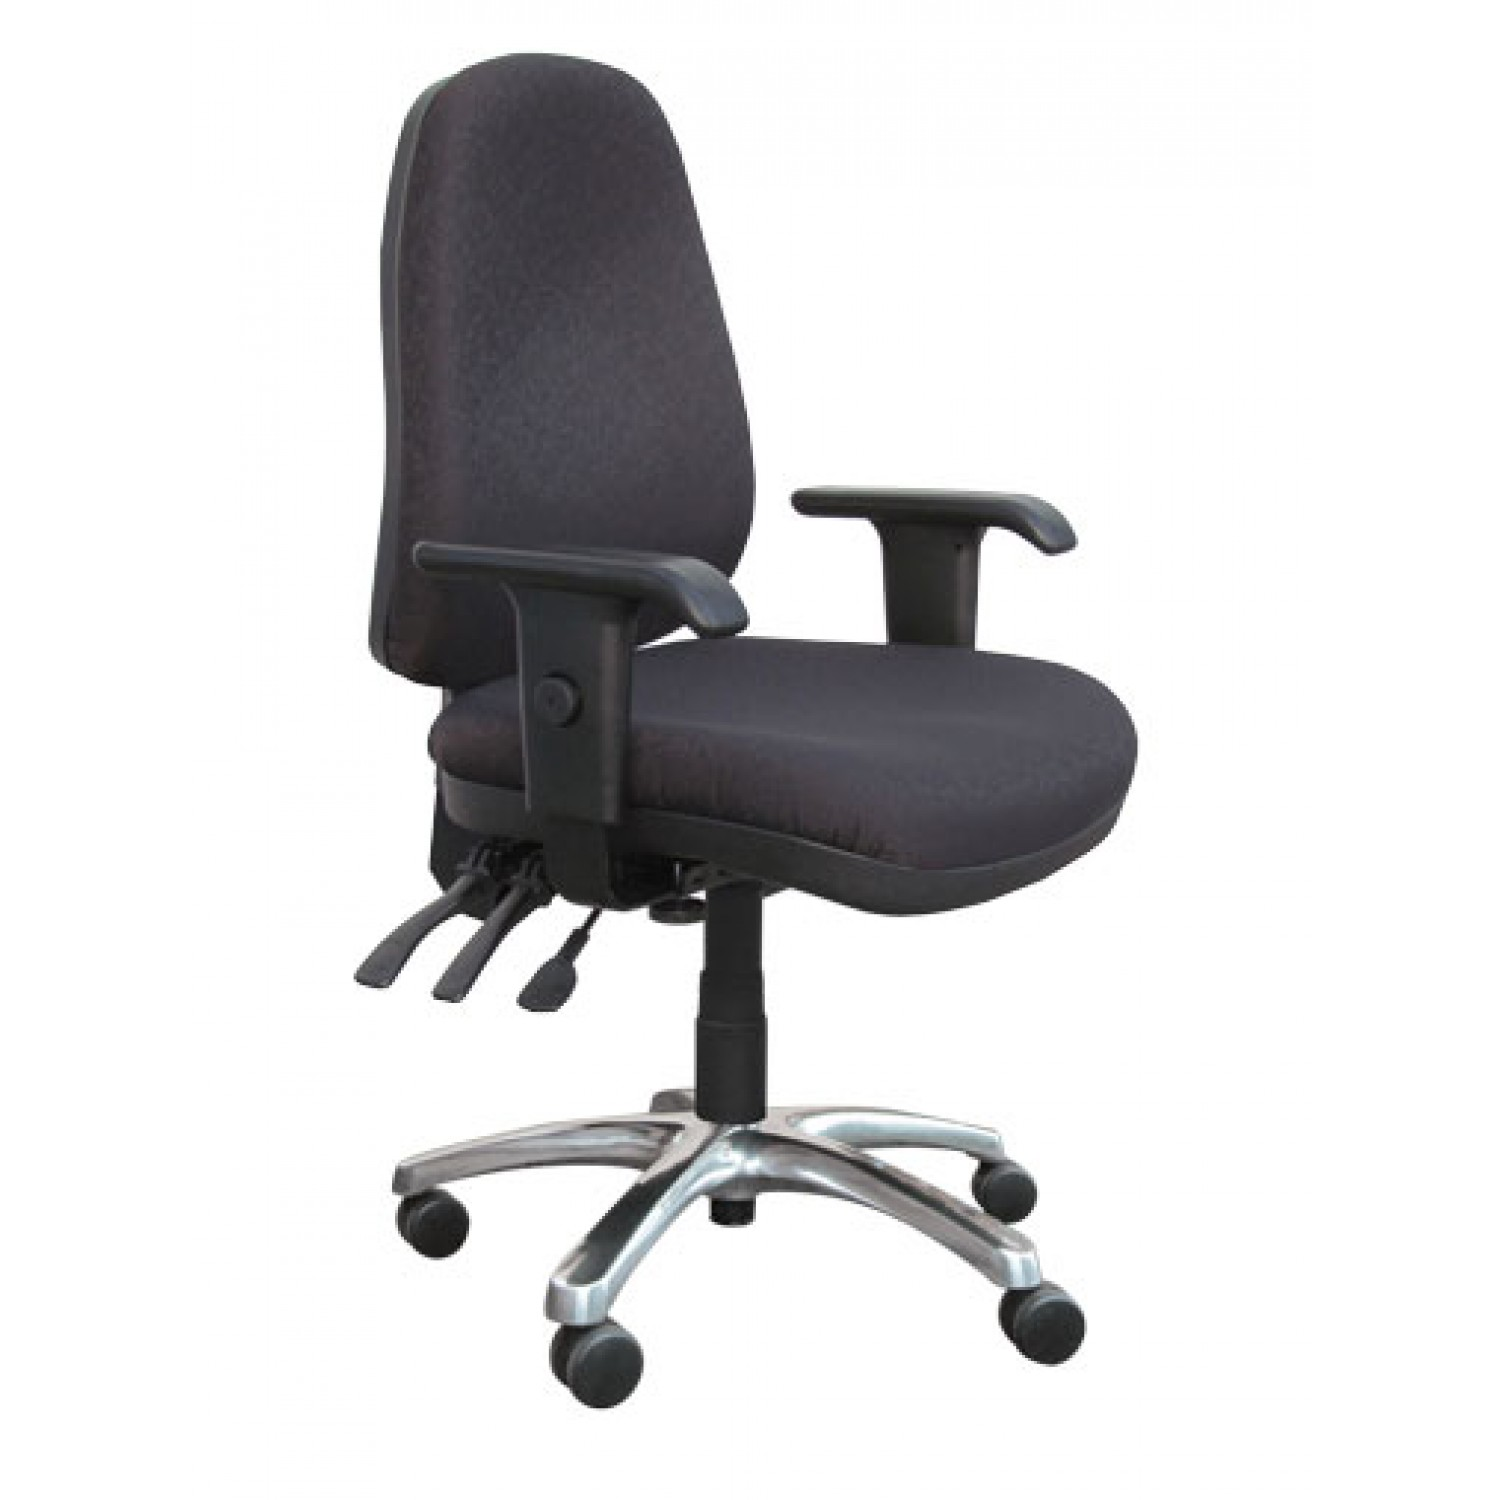 Comfortable Office Chairs Comfortable Ergonomic Office Chair Egress Office